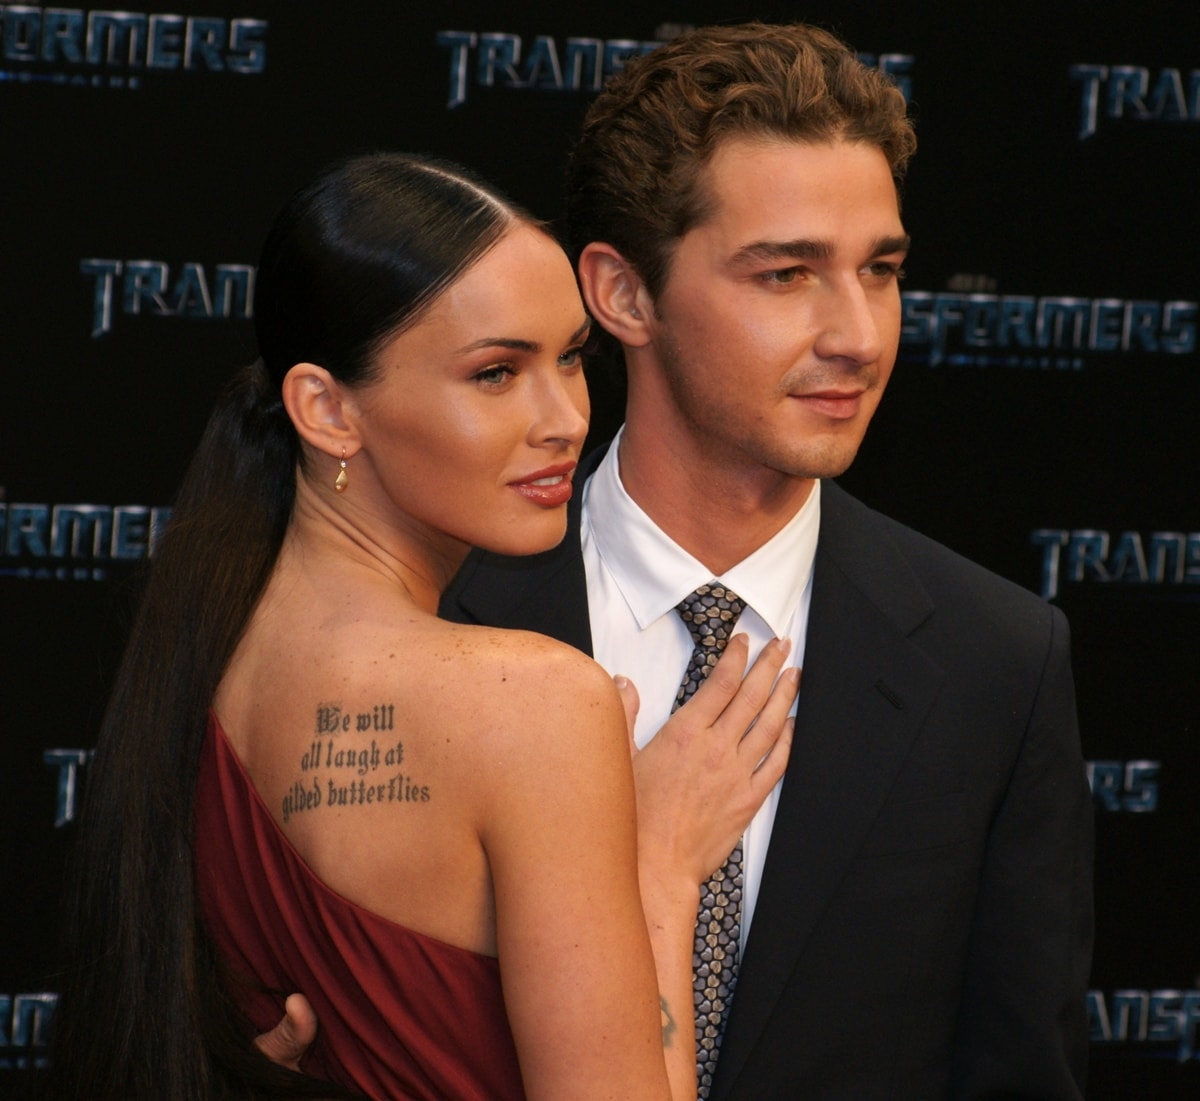 Shia LaBeouf and Megan Fox attend the German premiere of Transformers: Revenge Of The Fallen